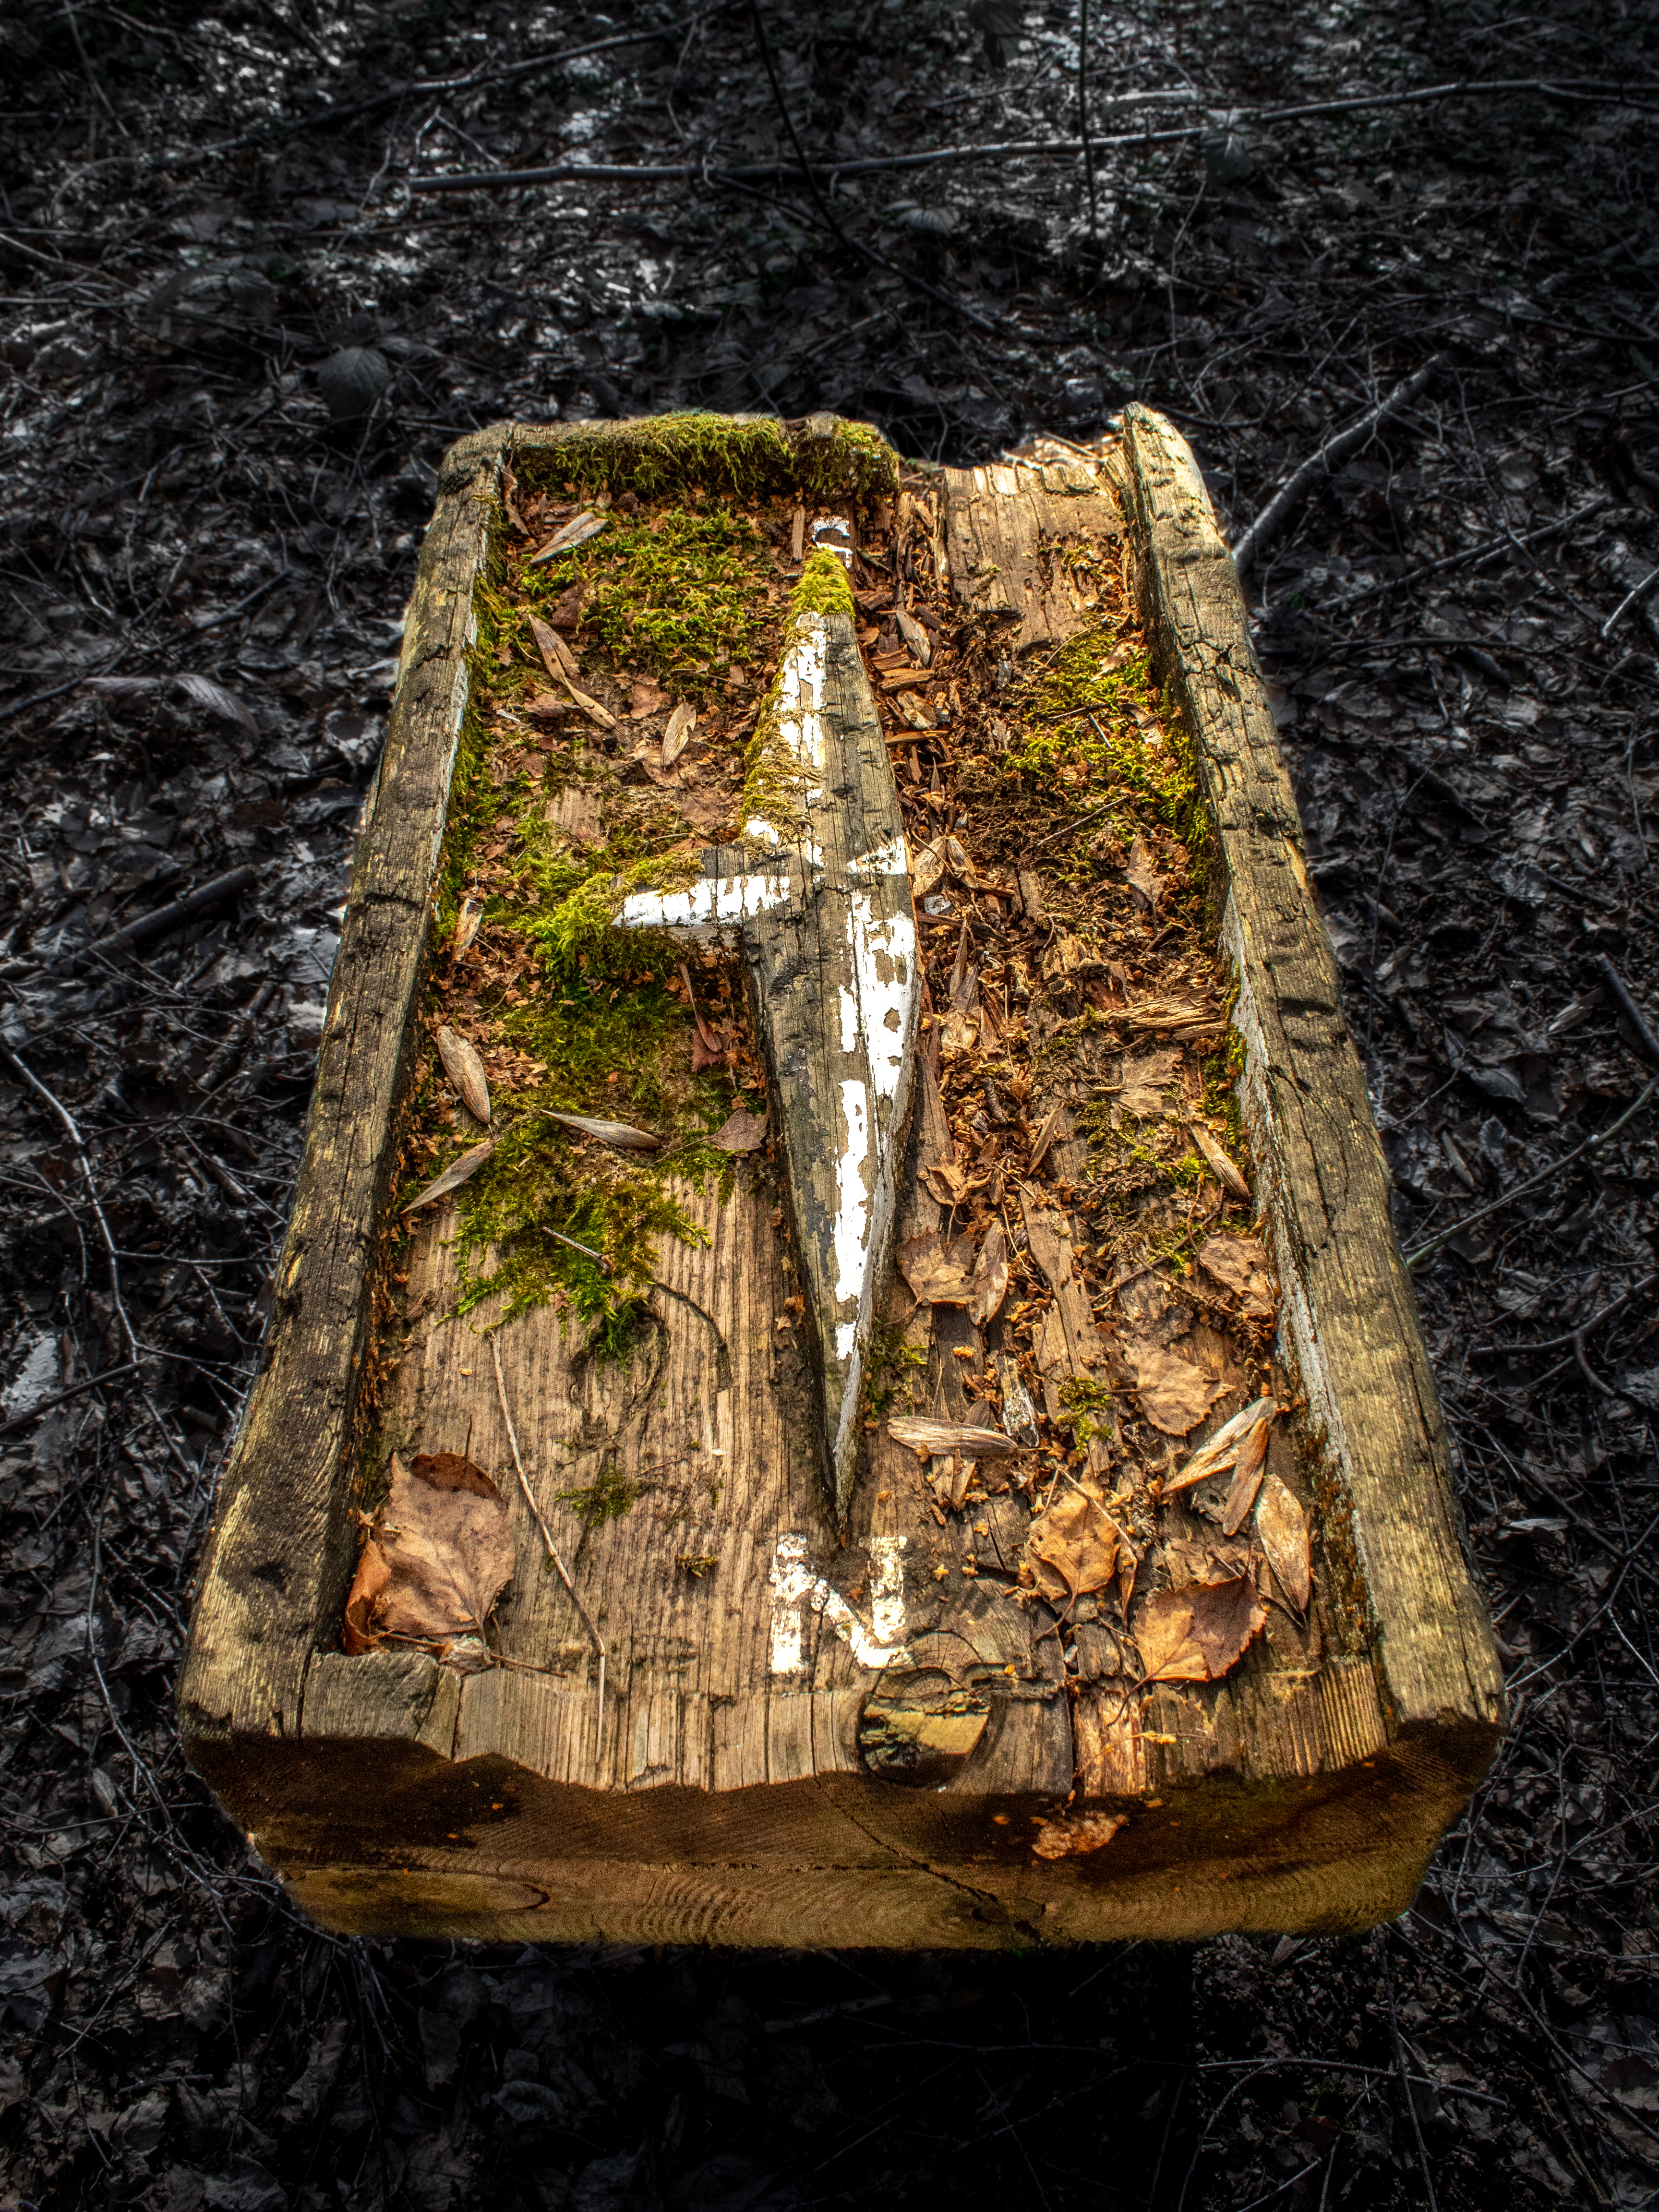 Sunlight on an Old Wooden Compass in the Forest